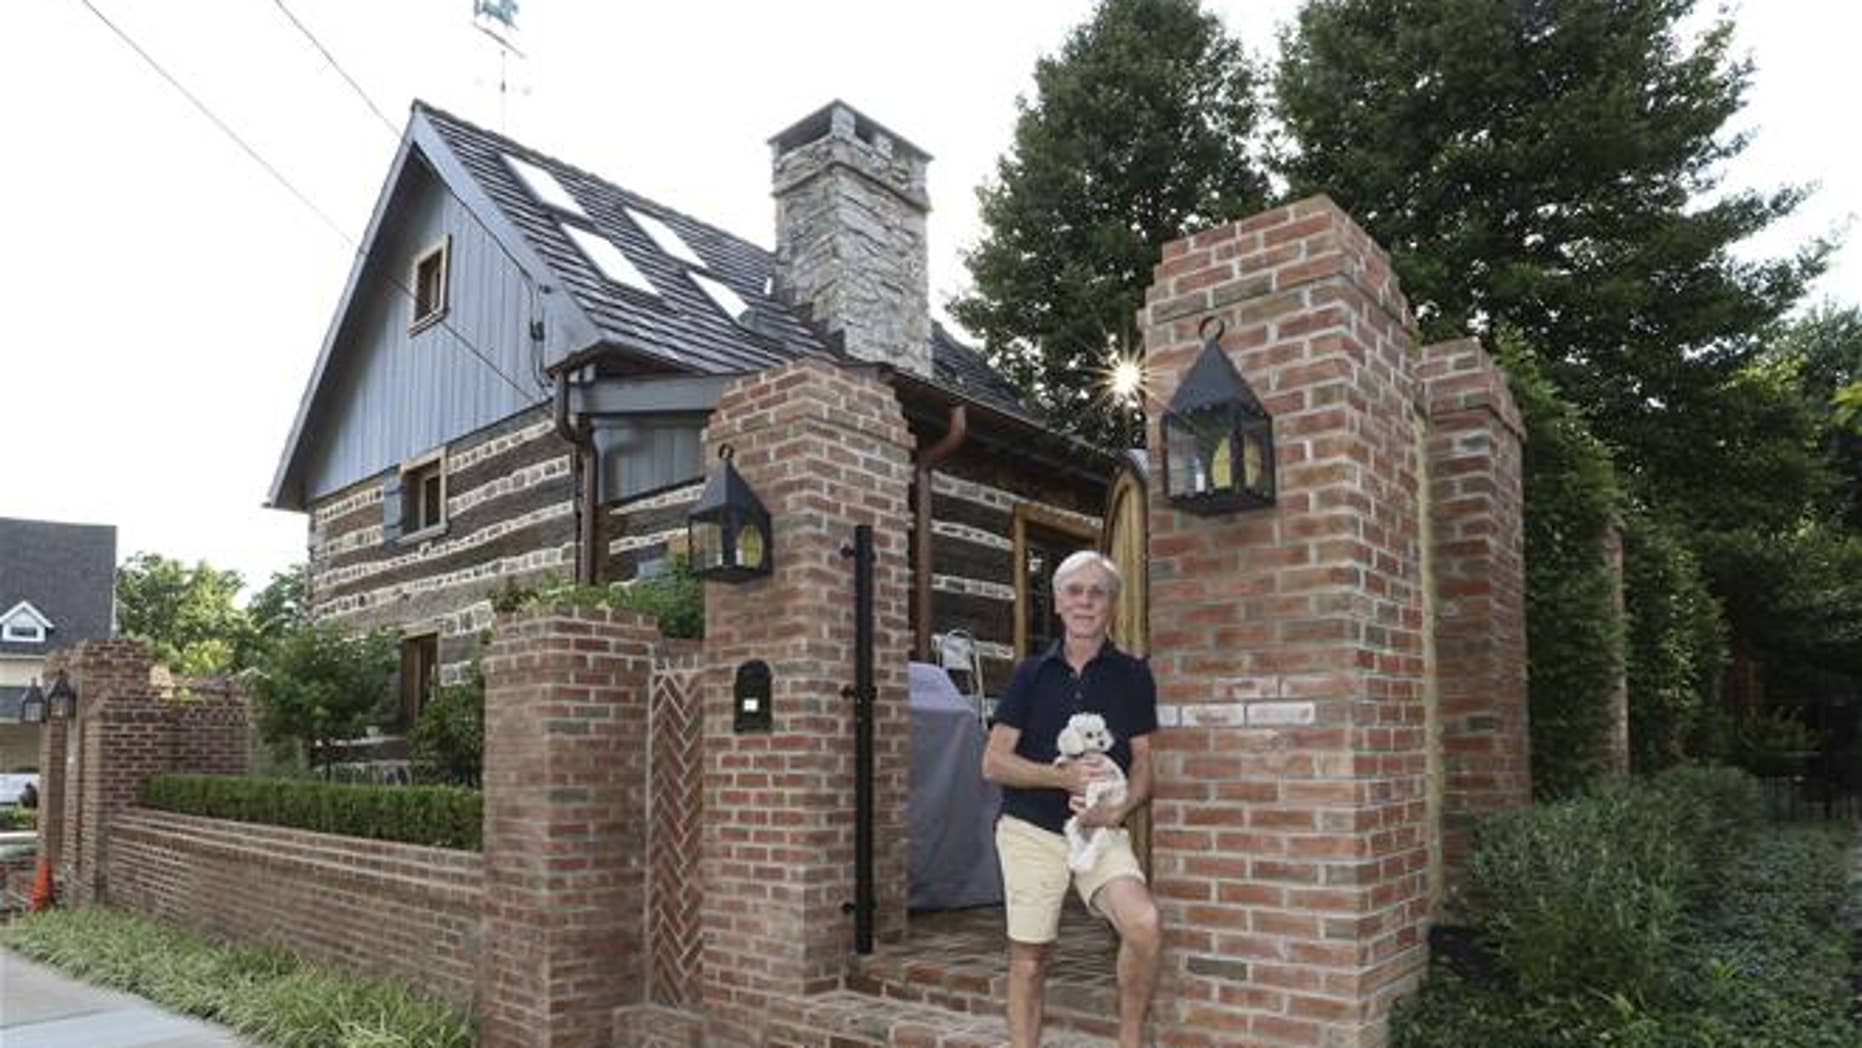 Jude Plum, with his dog, at his 300-year-old log home in Bryn Mawr, Pa.